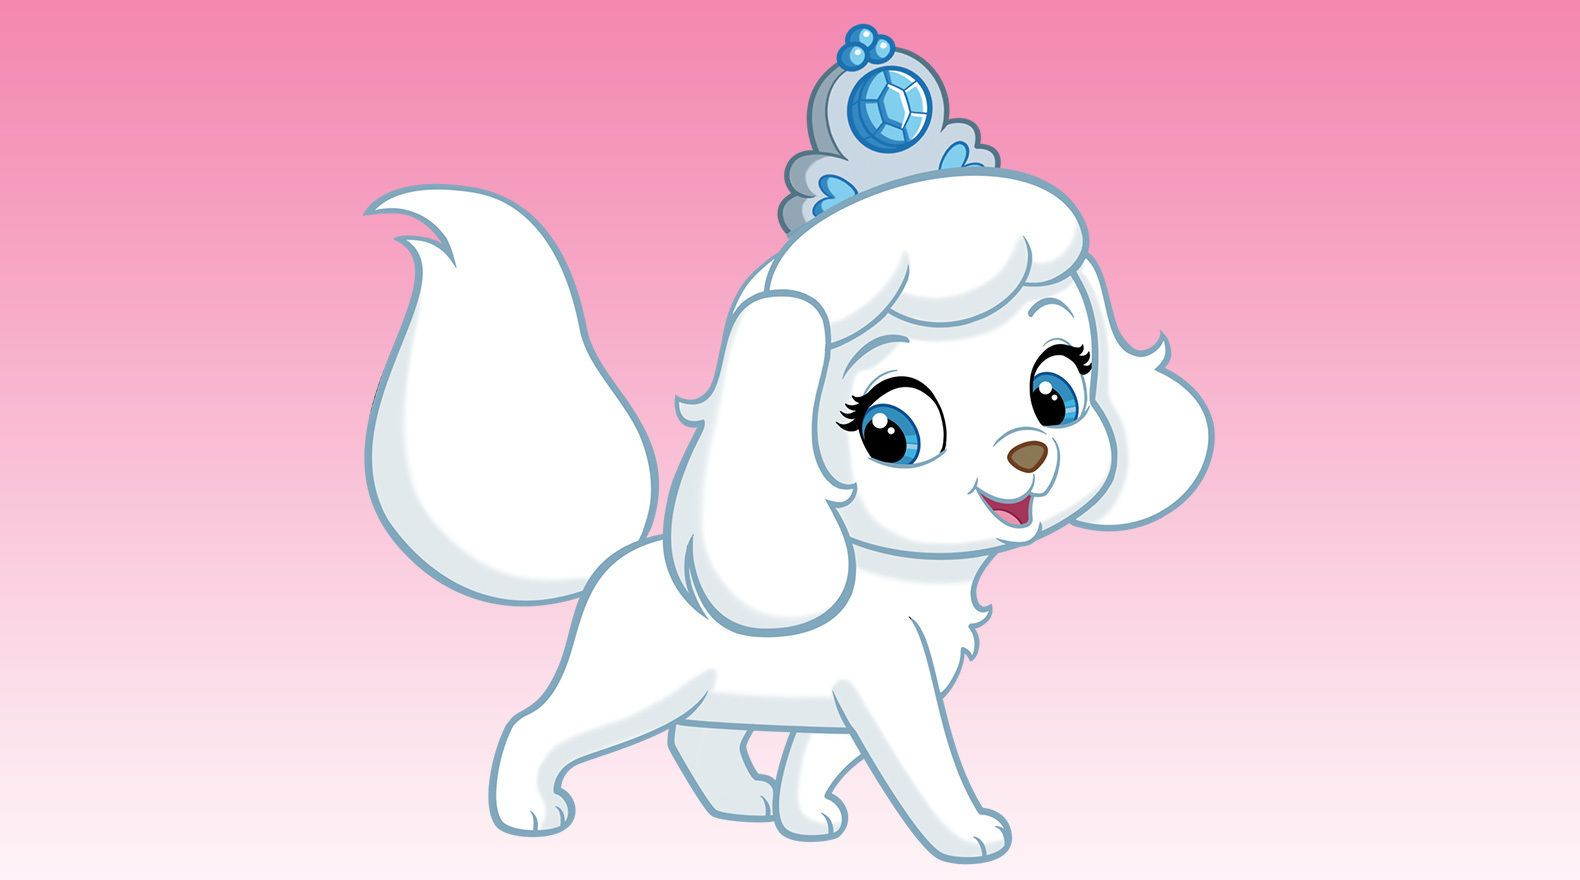 Pumpkin Was An Anniversary Present To Cinderella From Her Prince She Loves To Attend Royal Balls Where She Can Tw Palace Pets Pets Disney Princess Palace Pets